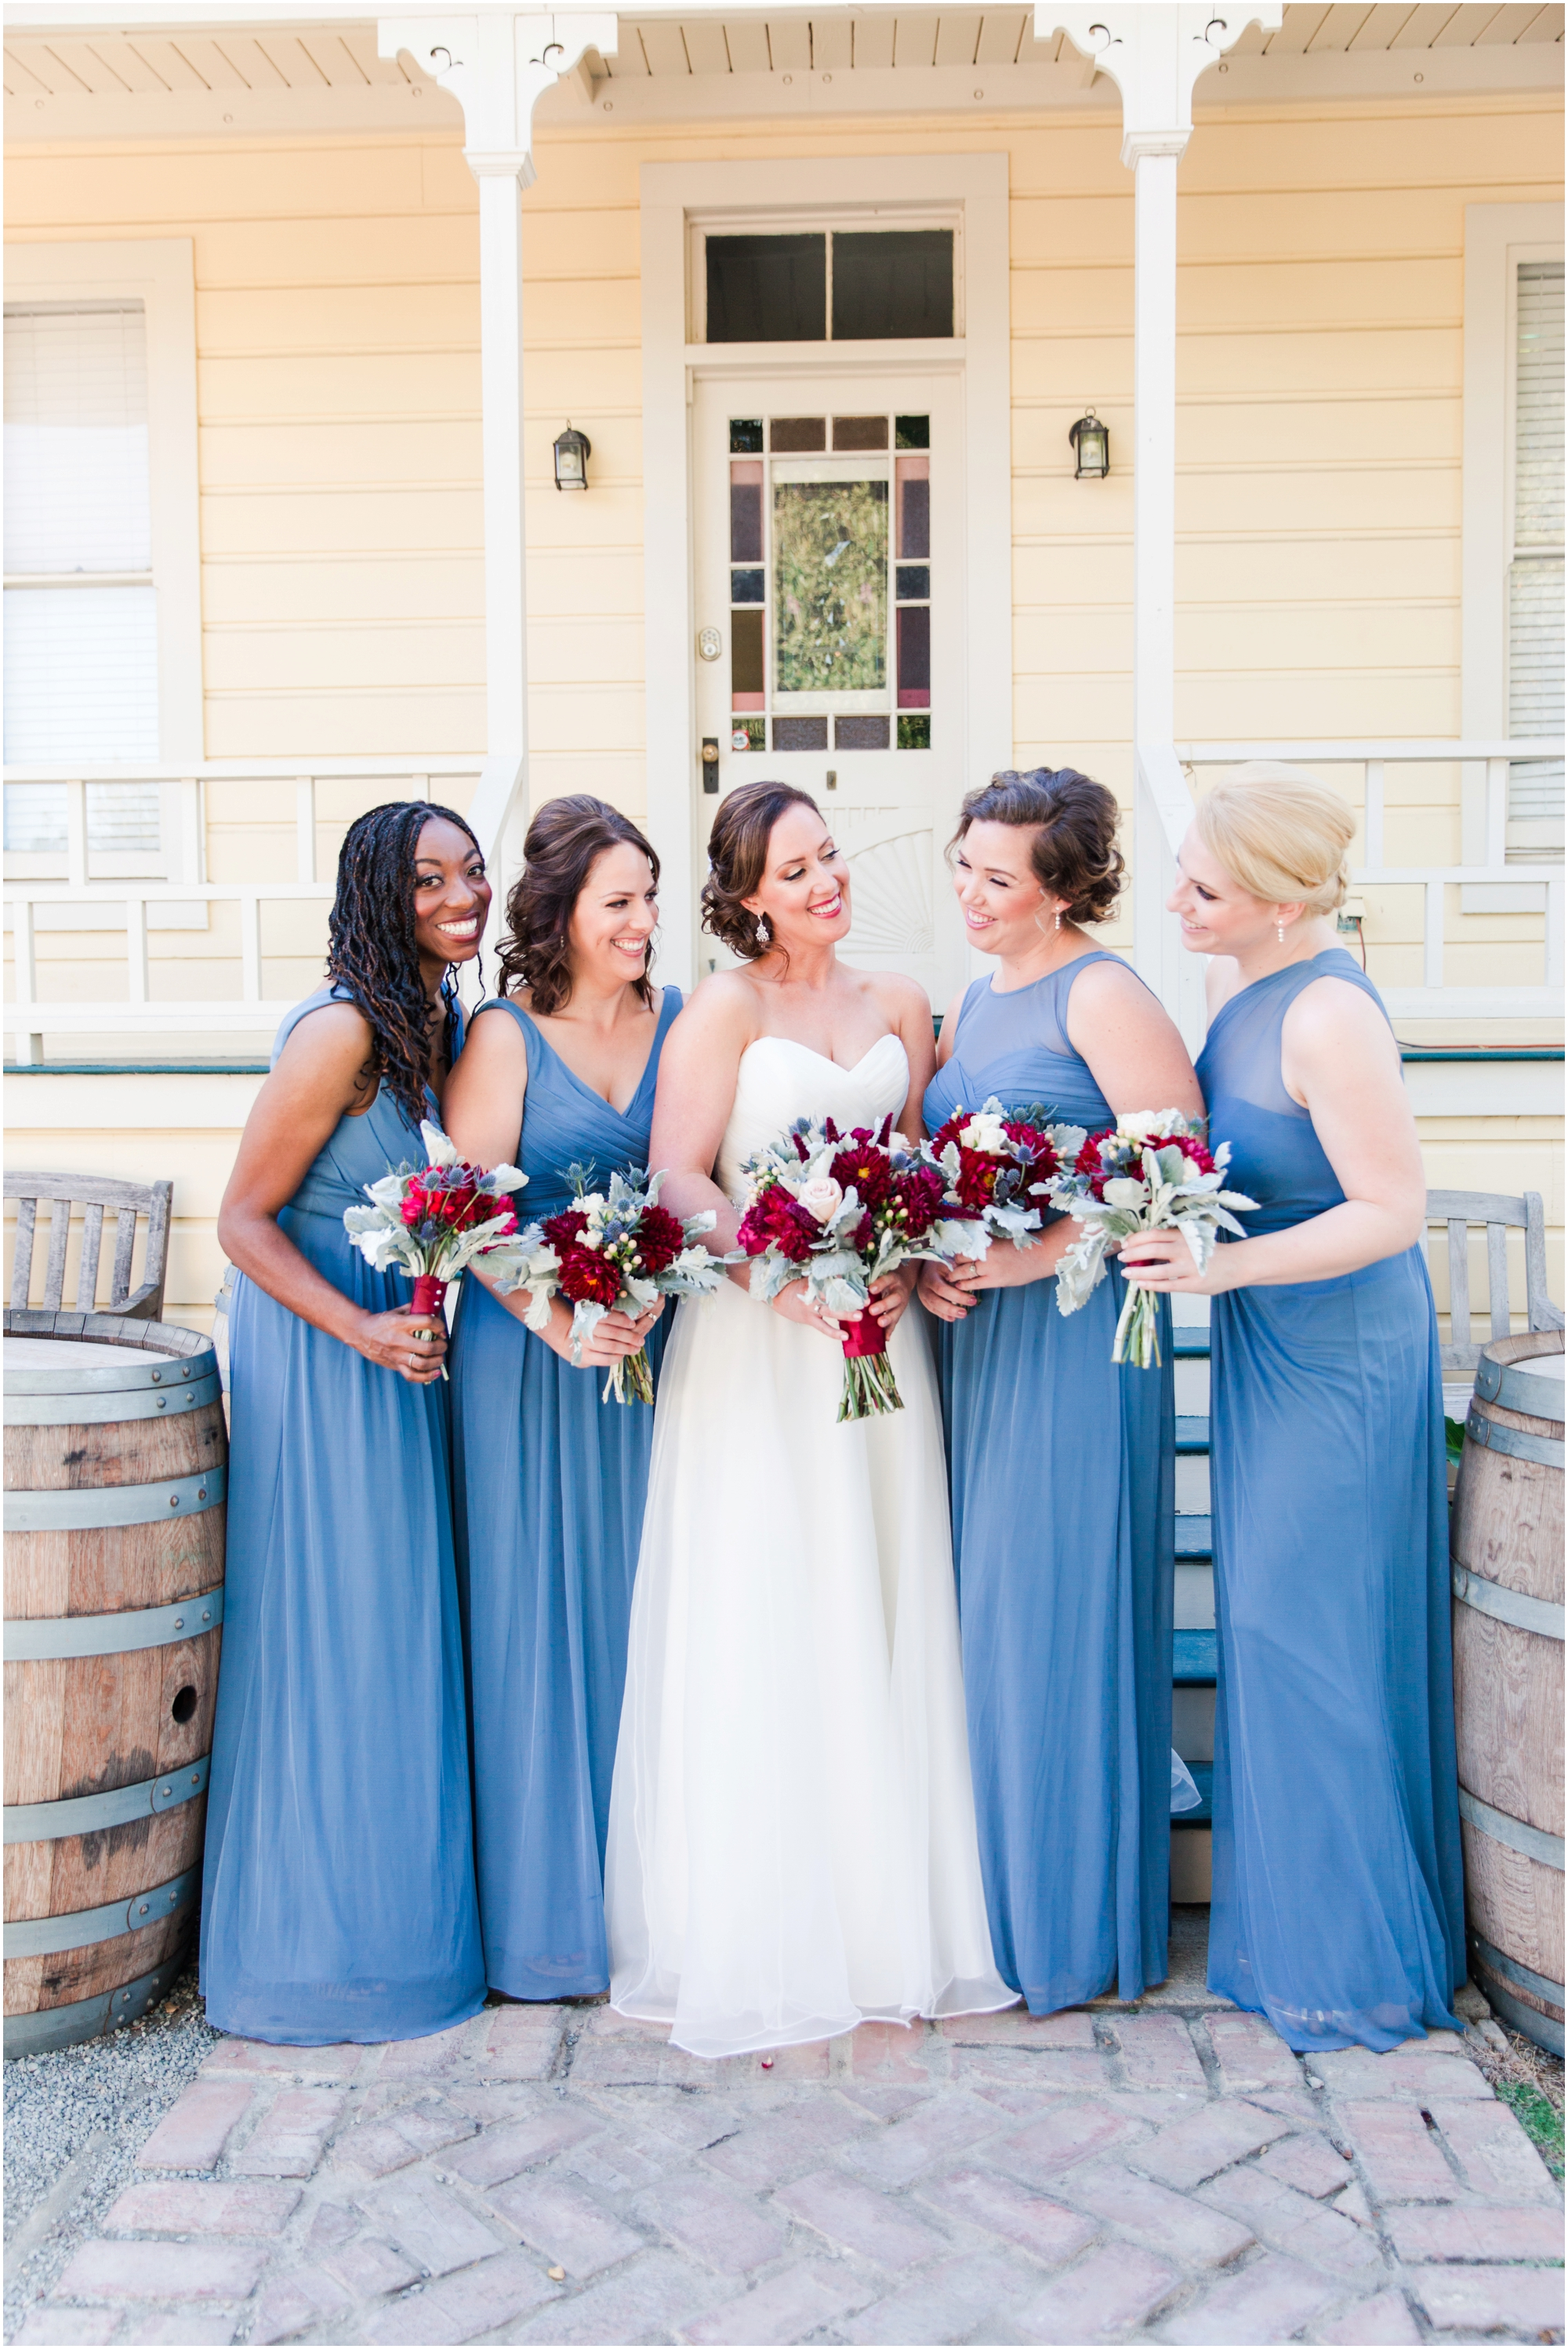 Picchetti Winery wedding pictures by Briana Calderon Photography_0442.jpg